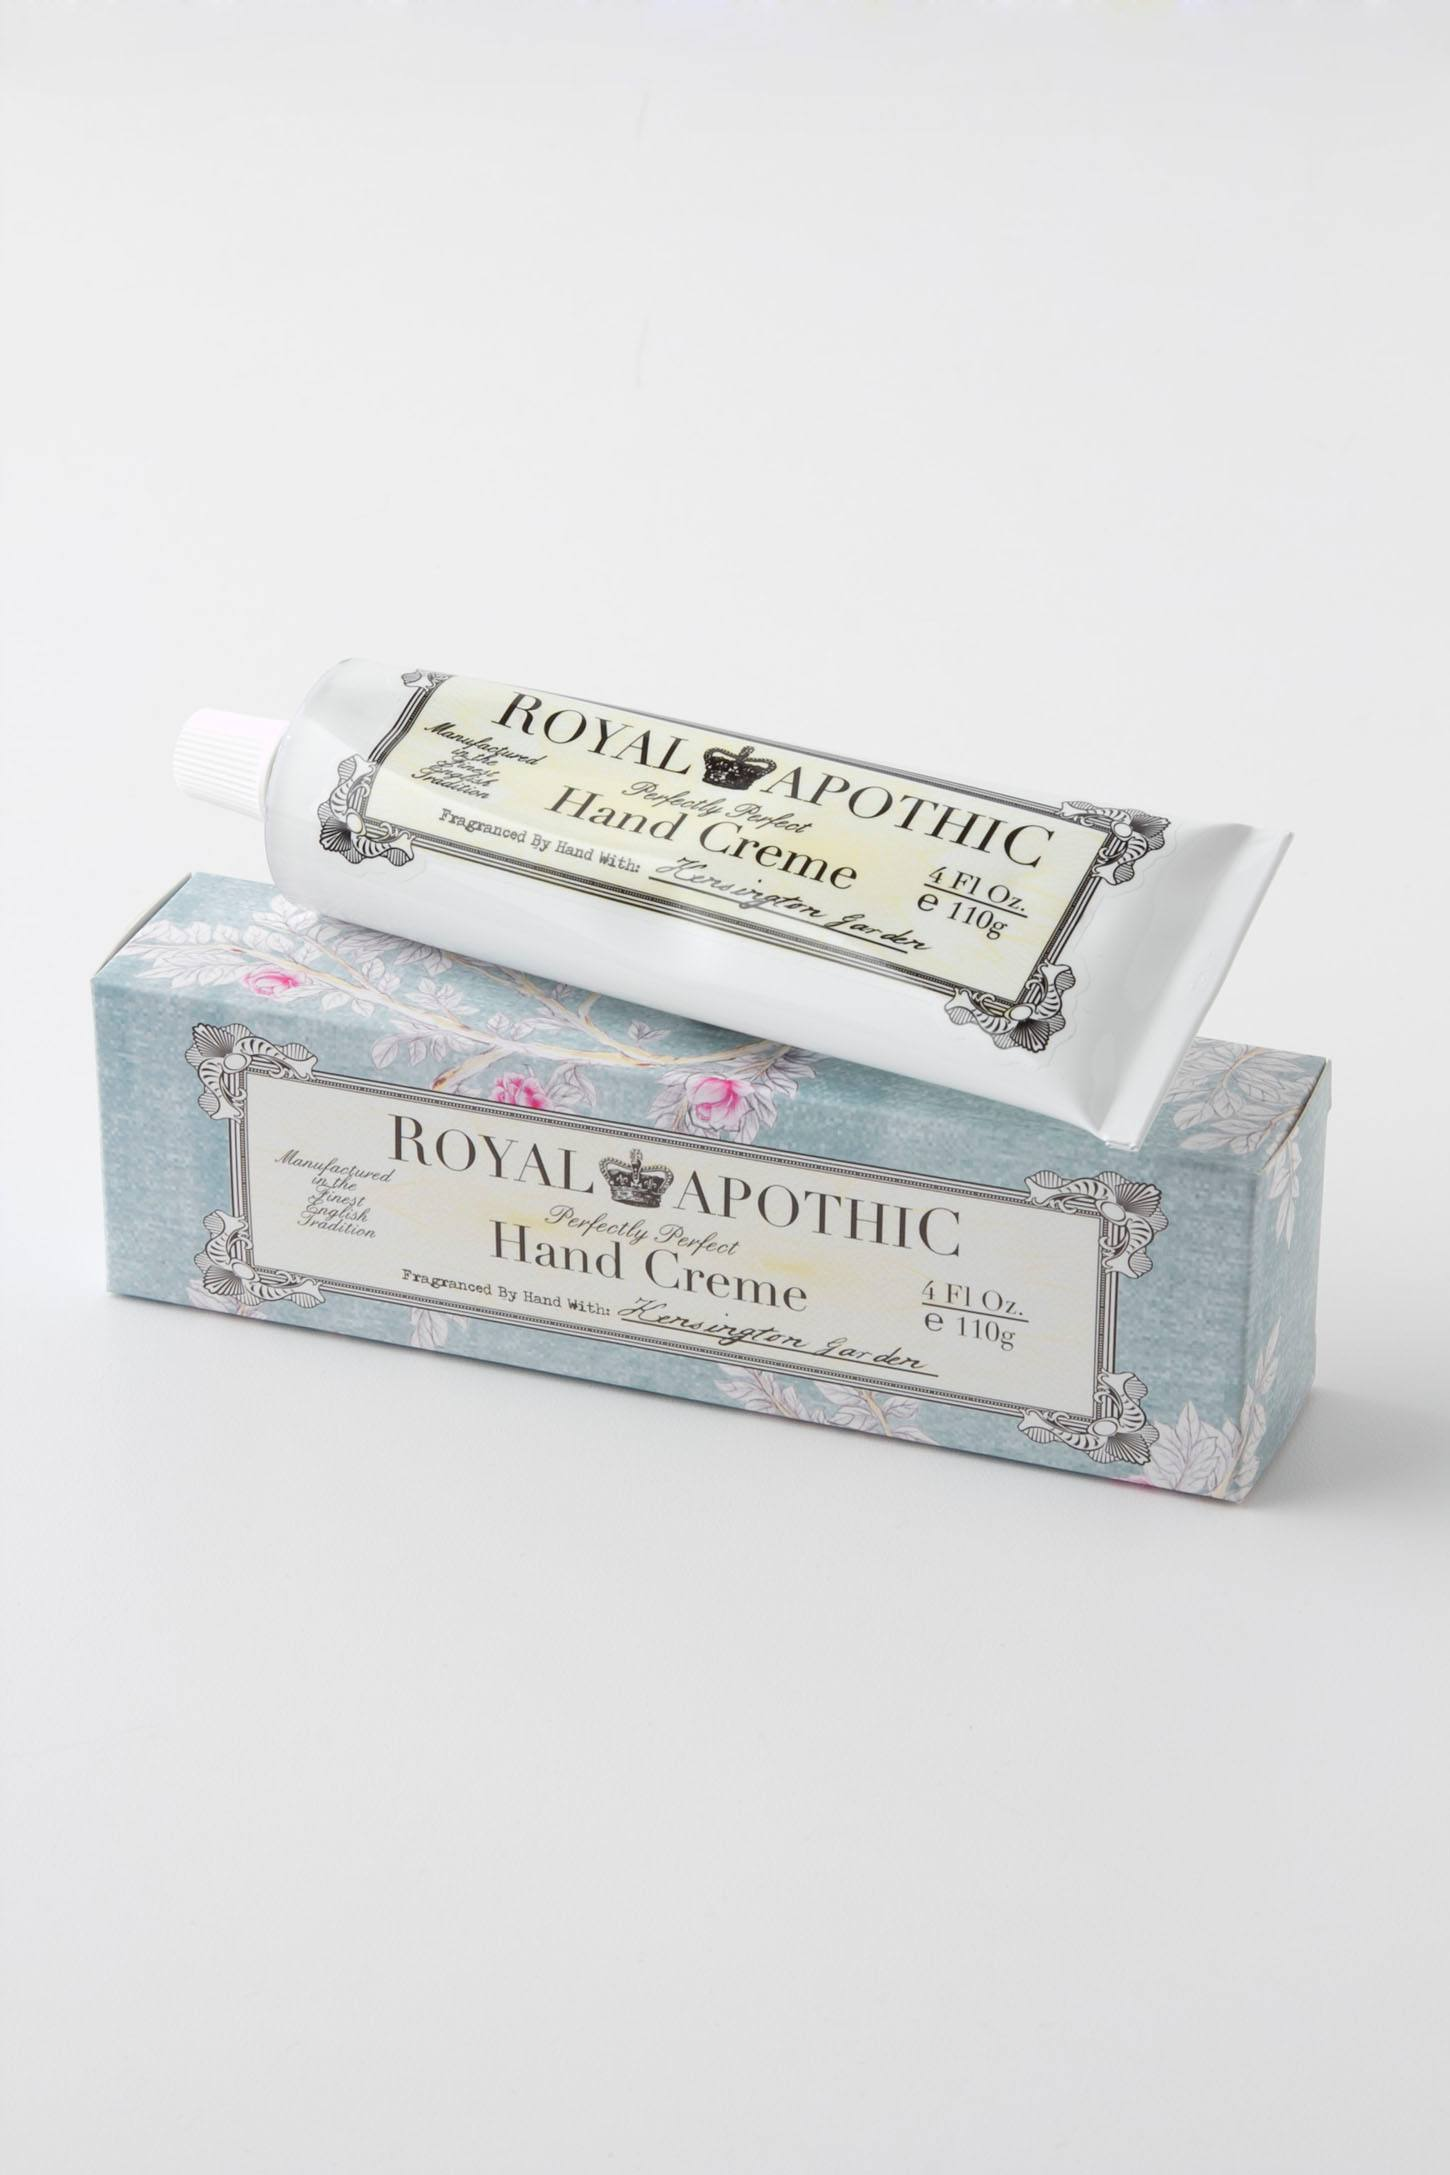 Royal Apothic Hand Cream